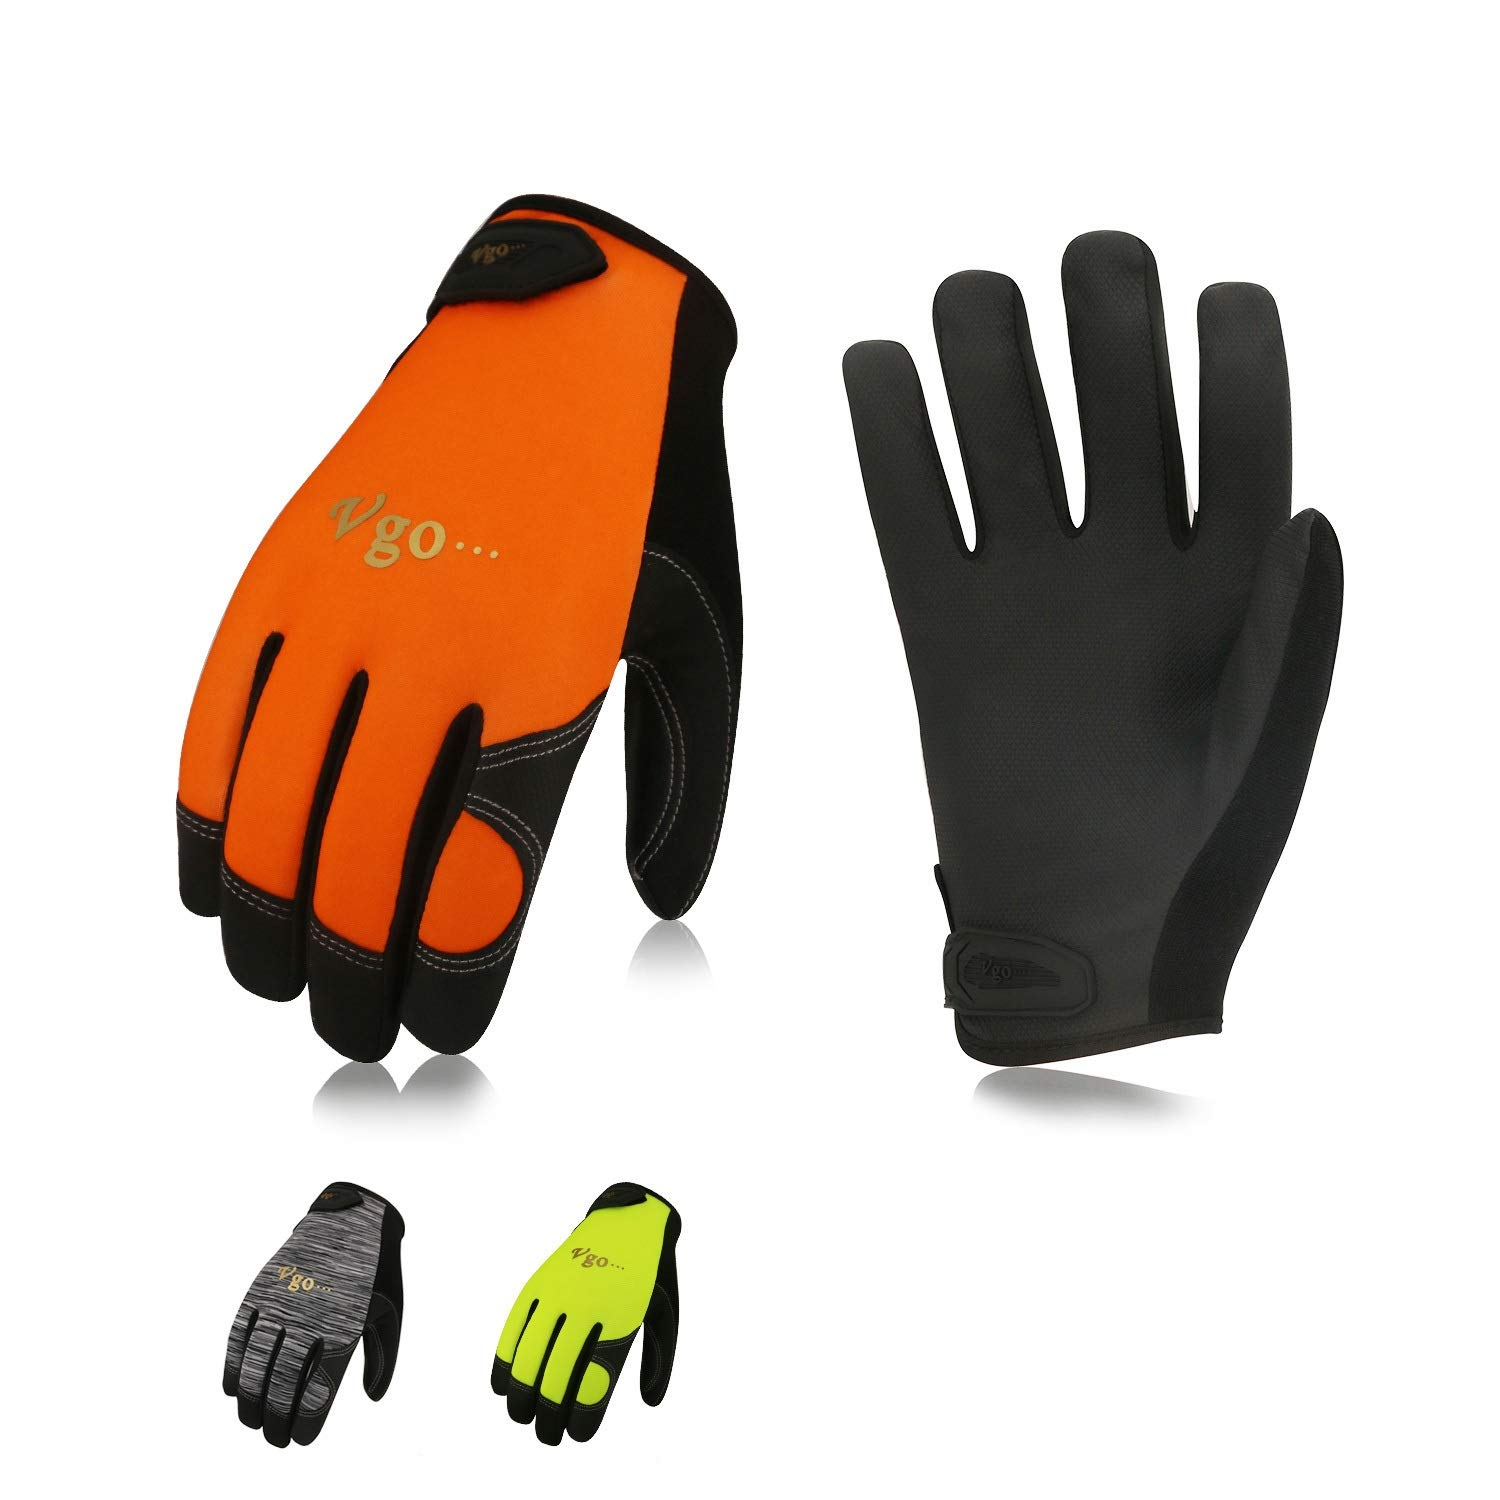 Vgo 3 Pairs High Dexterity Construction Protective Touchscreen Capable Builder Driver PU Leather Work Garden Gloves Multipurpose (Size 9/L, Grey & Orange & Green, PU8718) Laborsing Safety Products Inc.